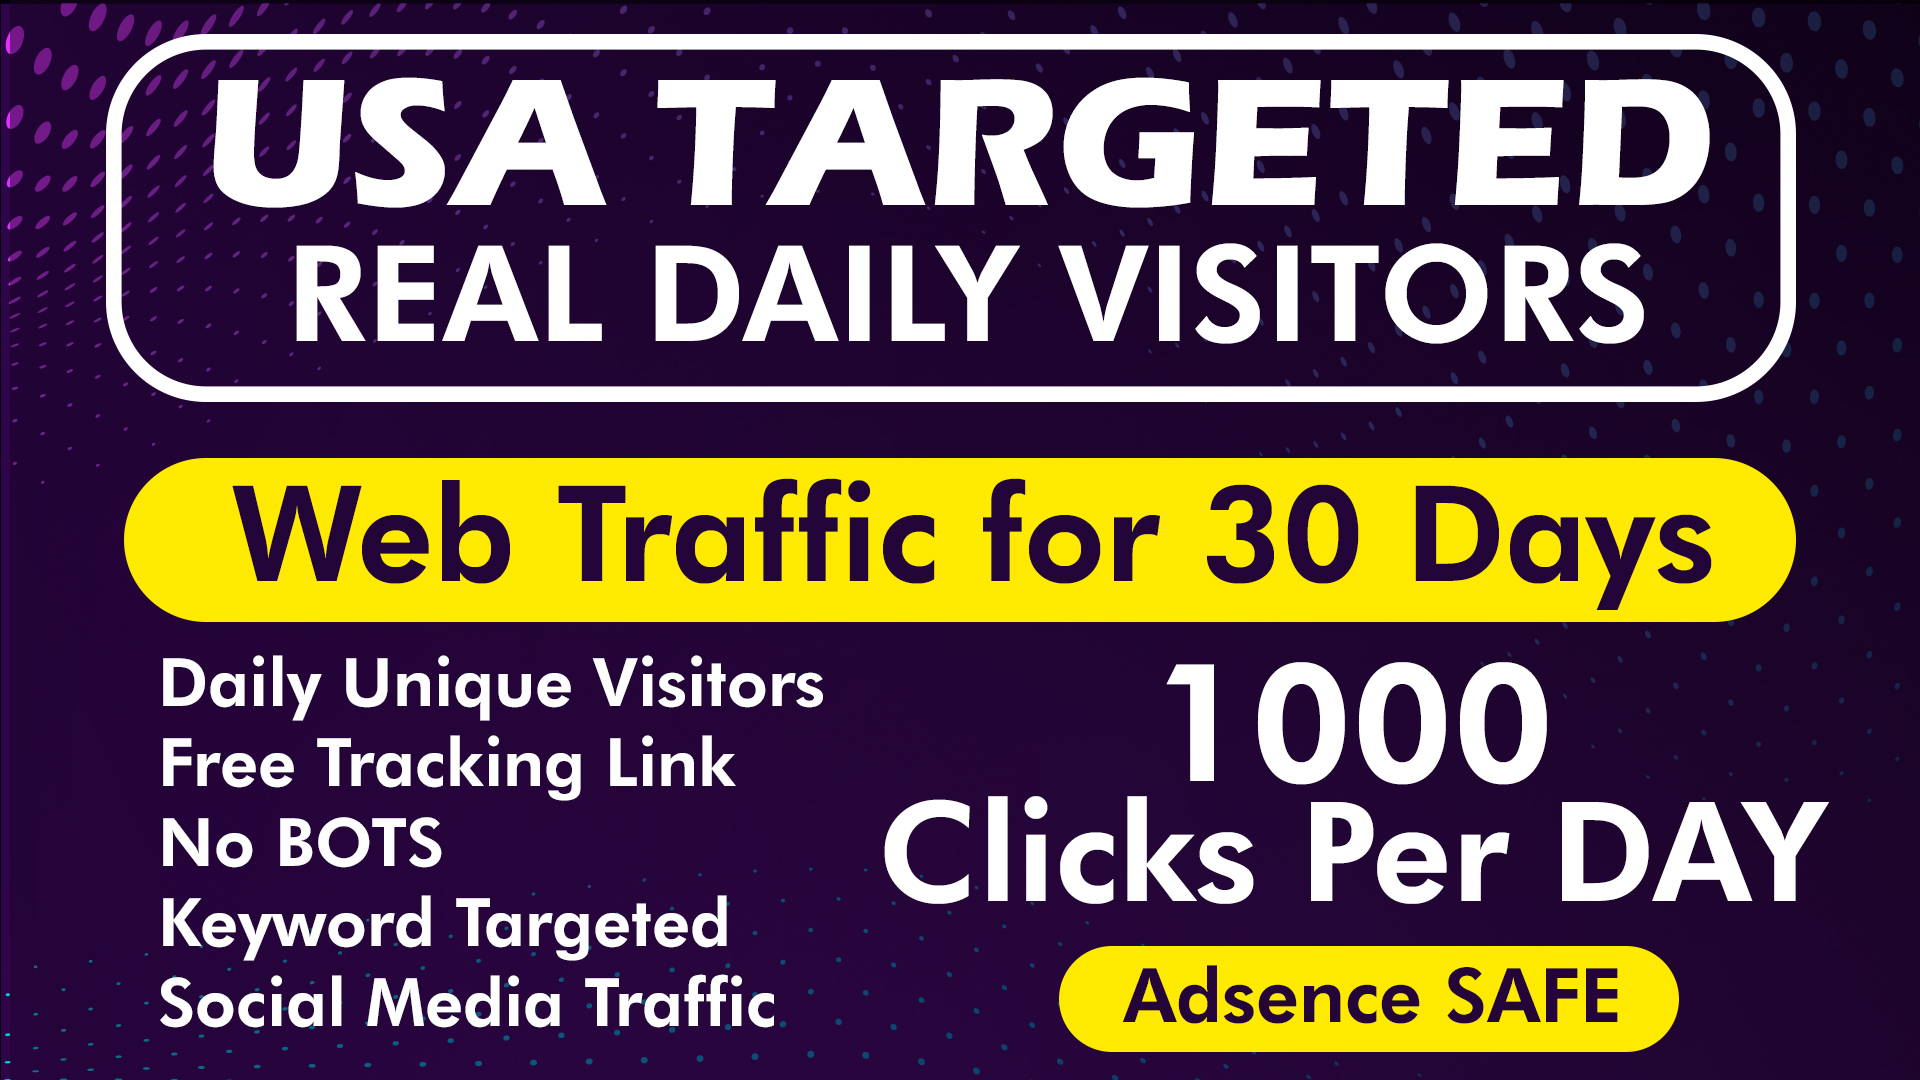 Drive USA Targeted Real Human Daily Visitors NO BOTS with Tracking Link